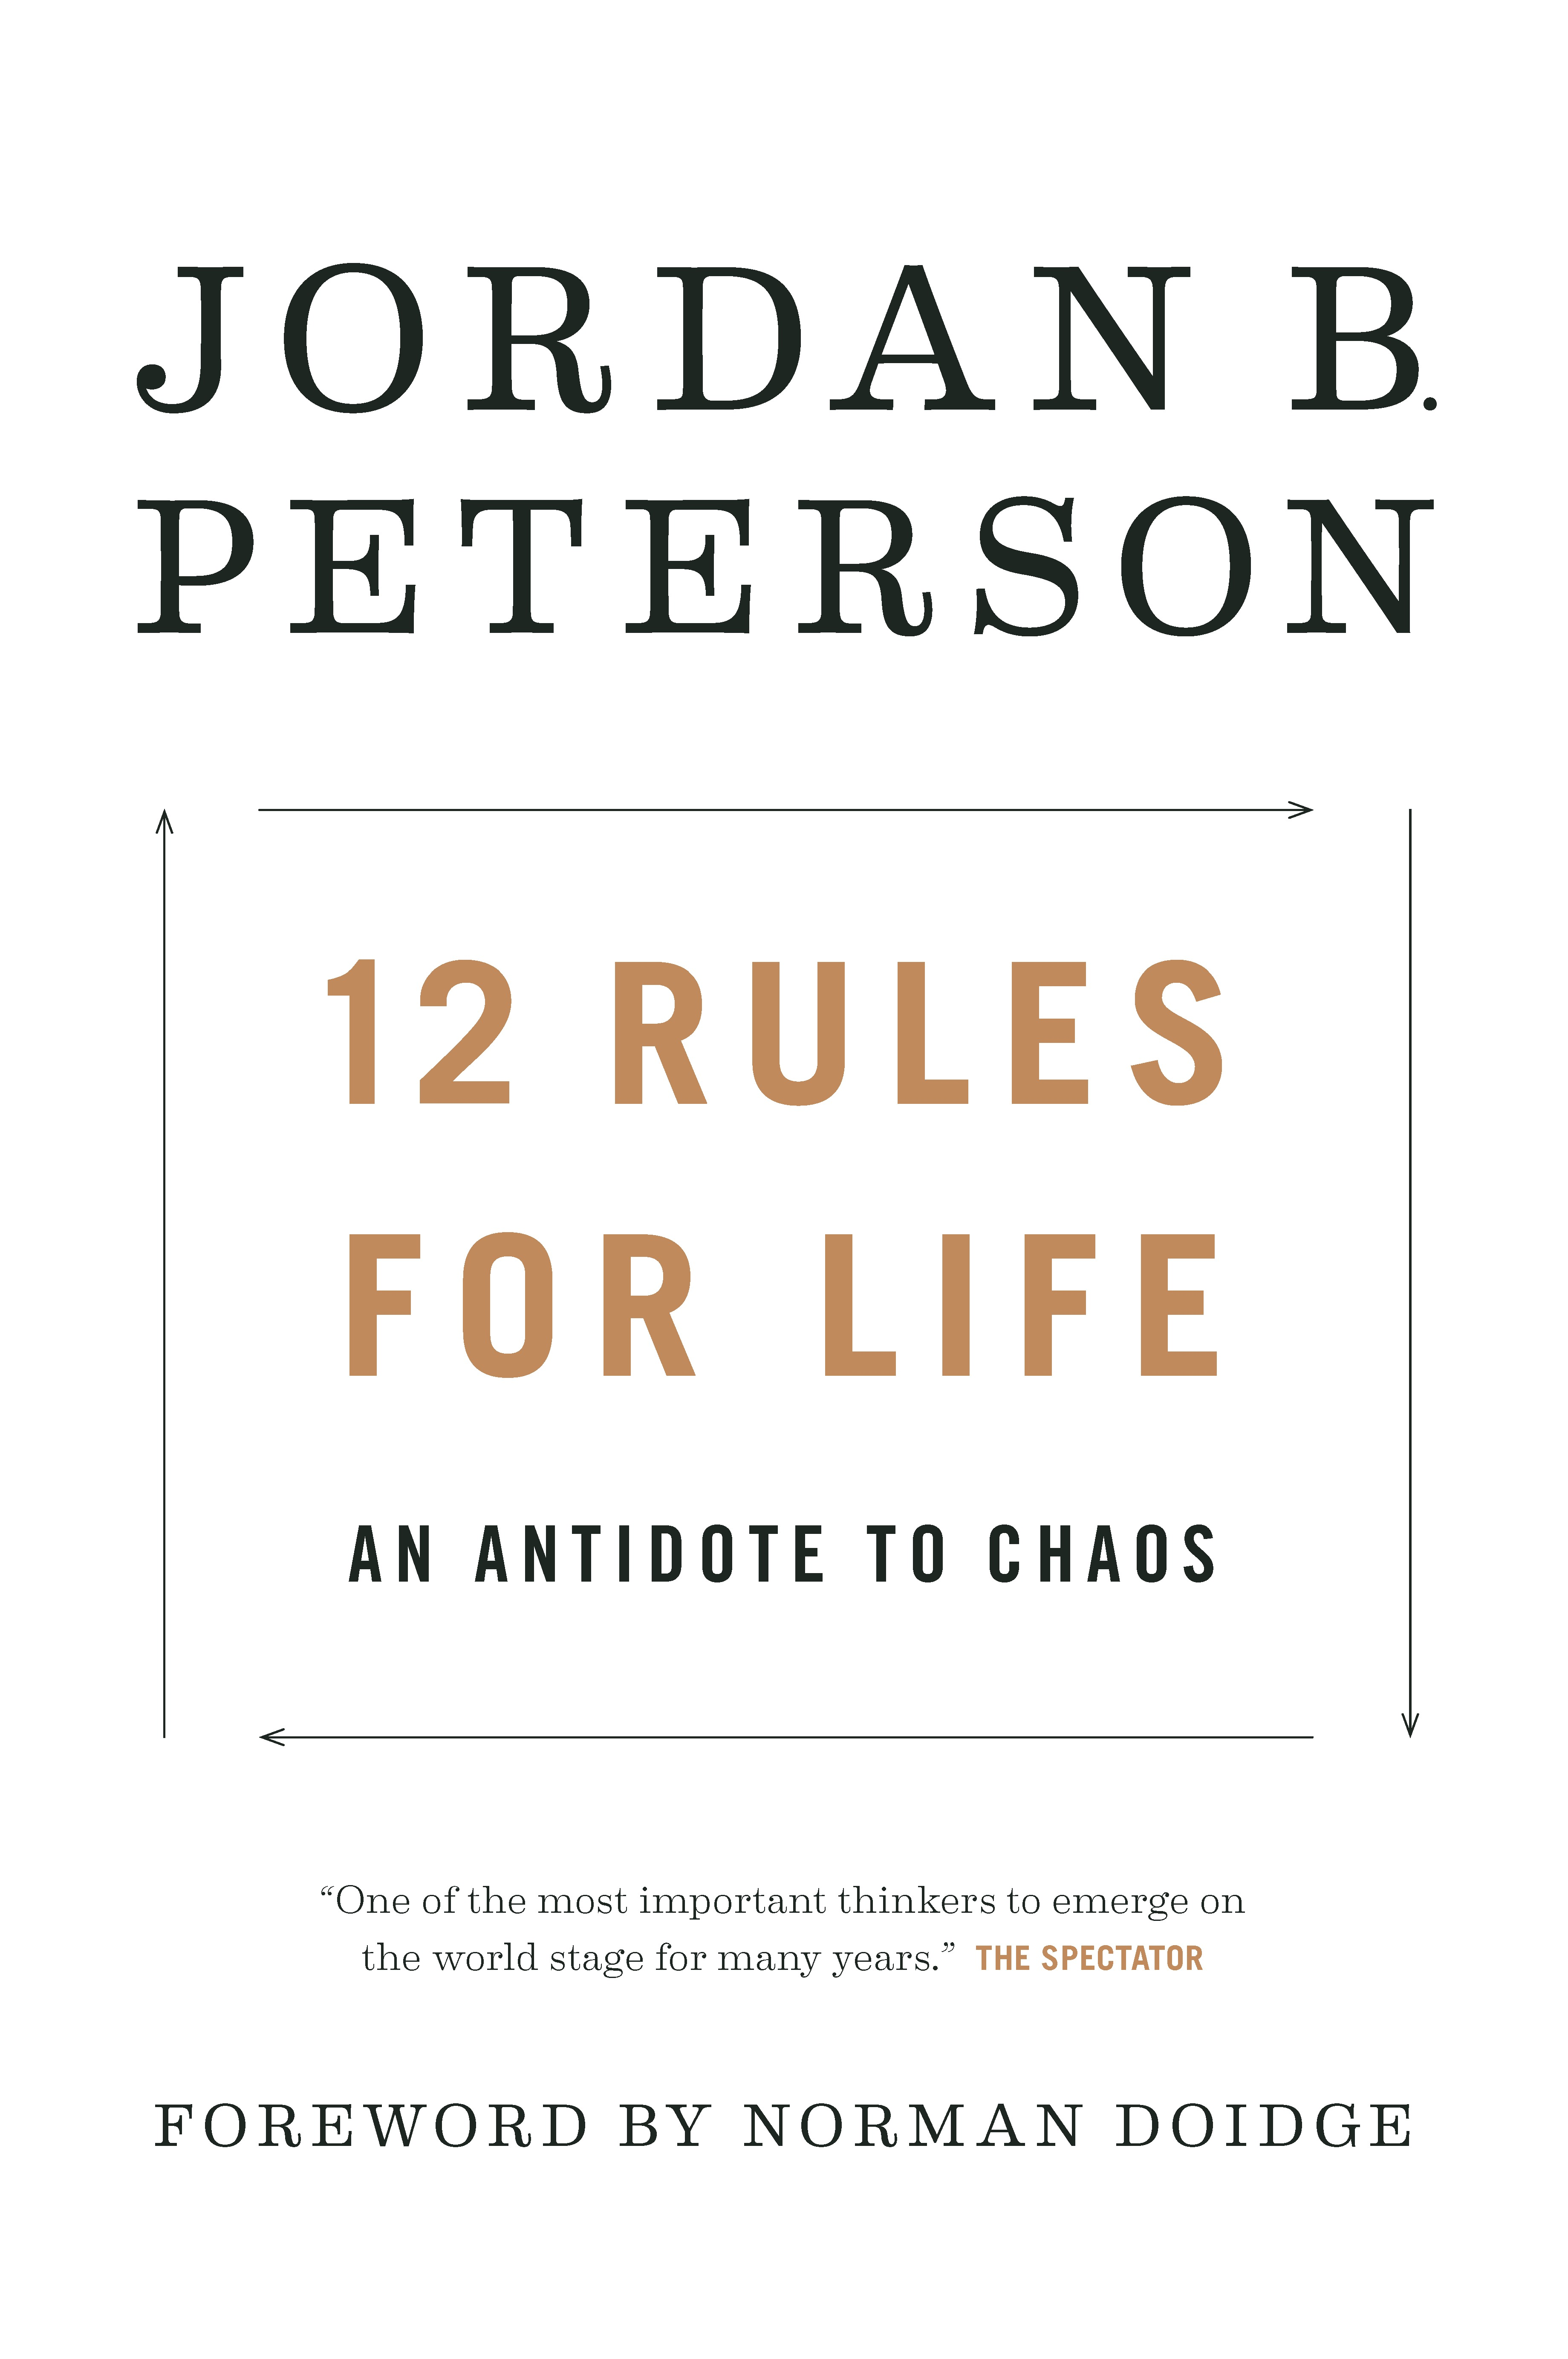 13 Rules for Life - Wikipedia